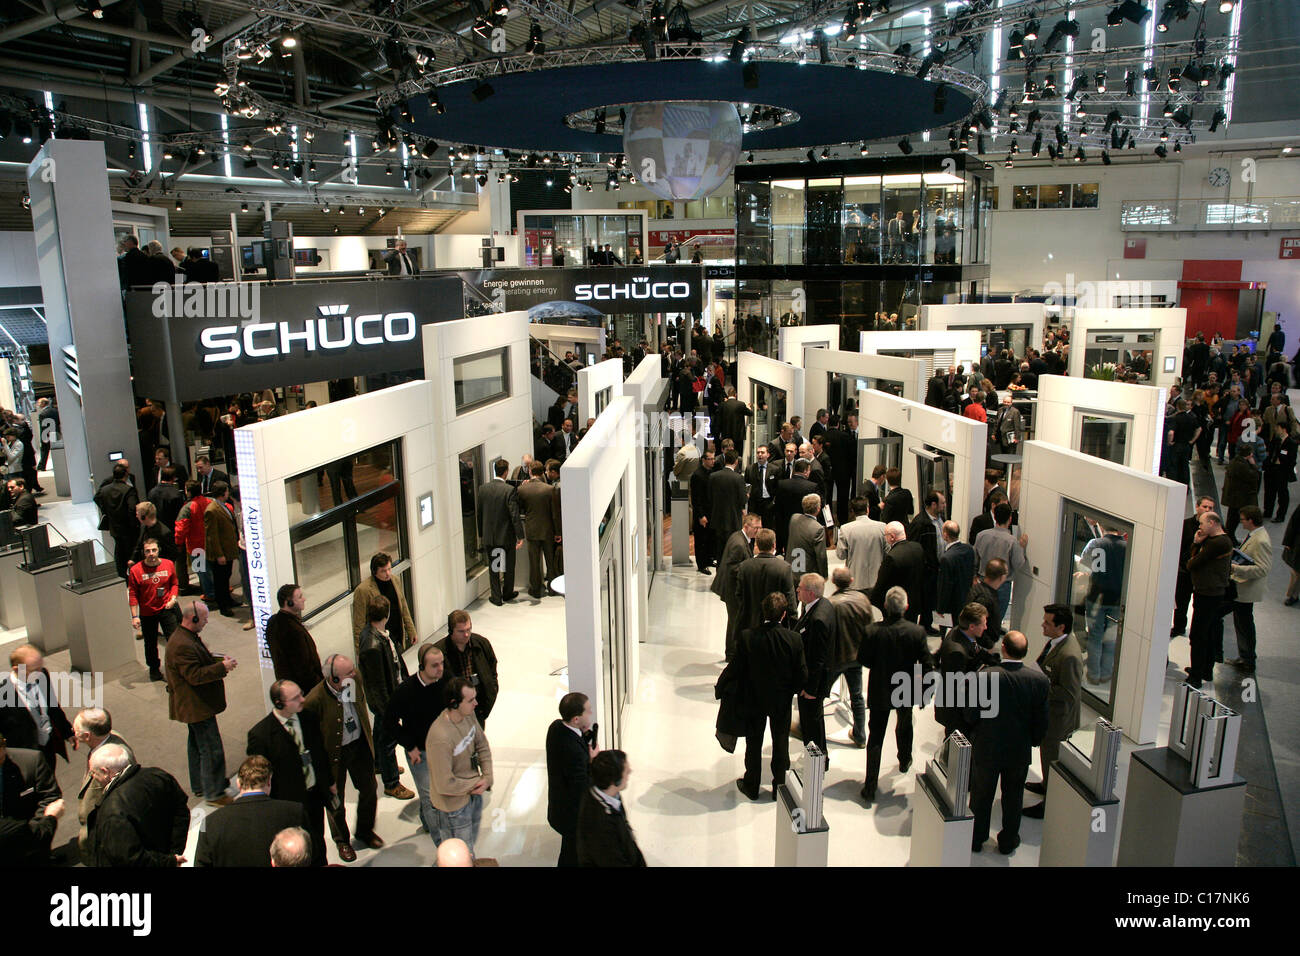 Schüco München exhibition stand of the company schueco international kg at the